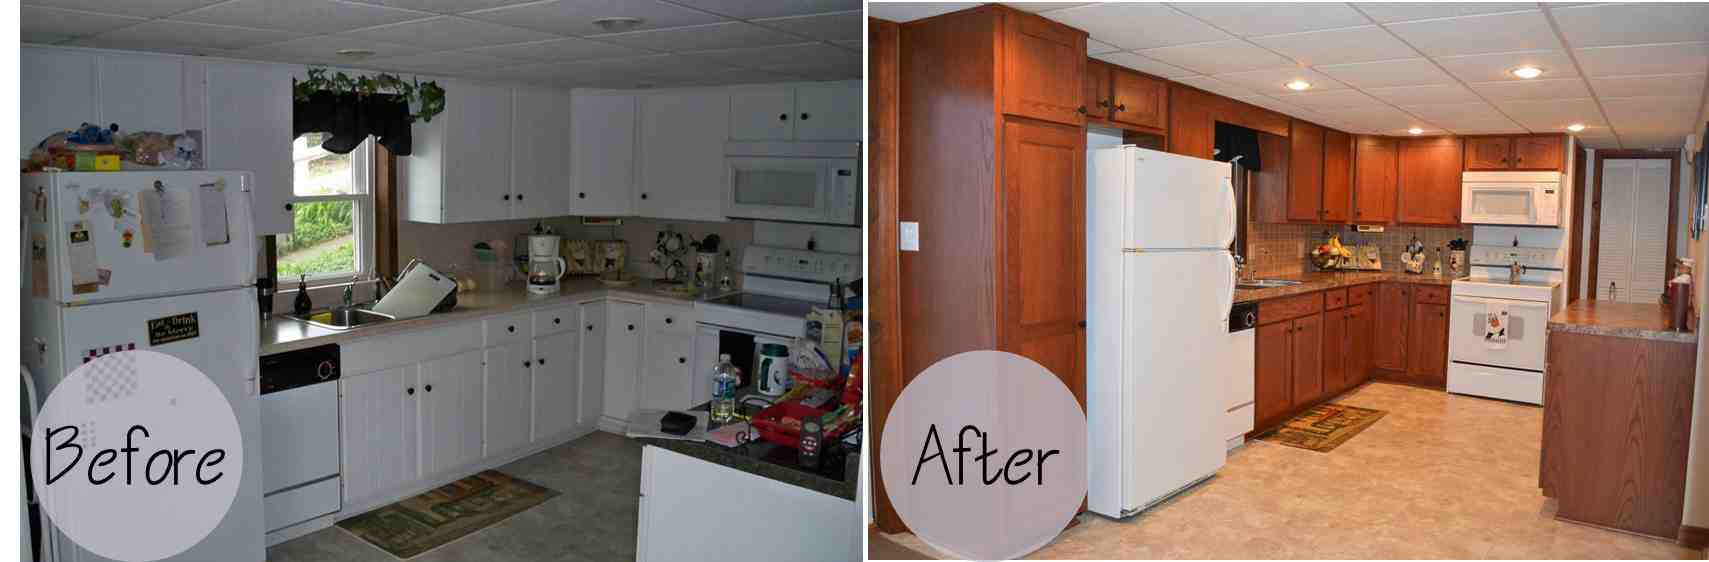 resurfacing kitchen cabinets before and after kitchen cabinet refacing before and after photos decor 25548